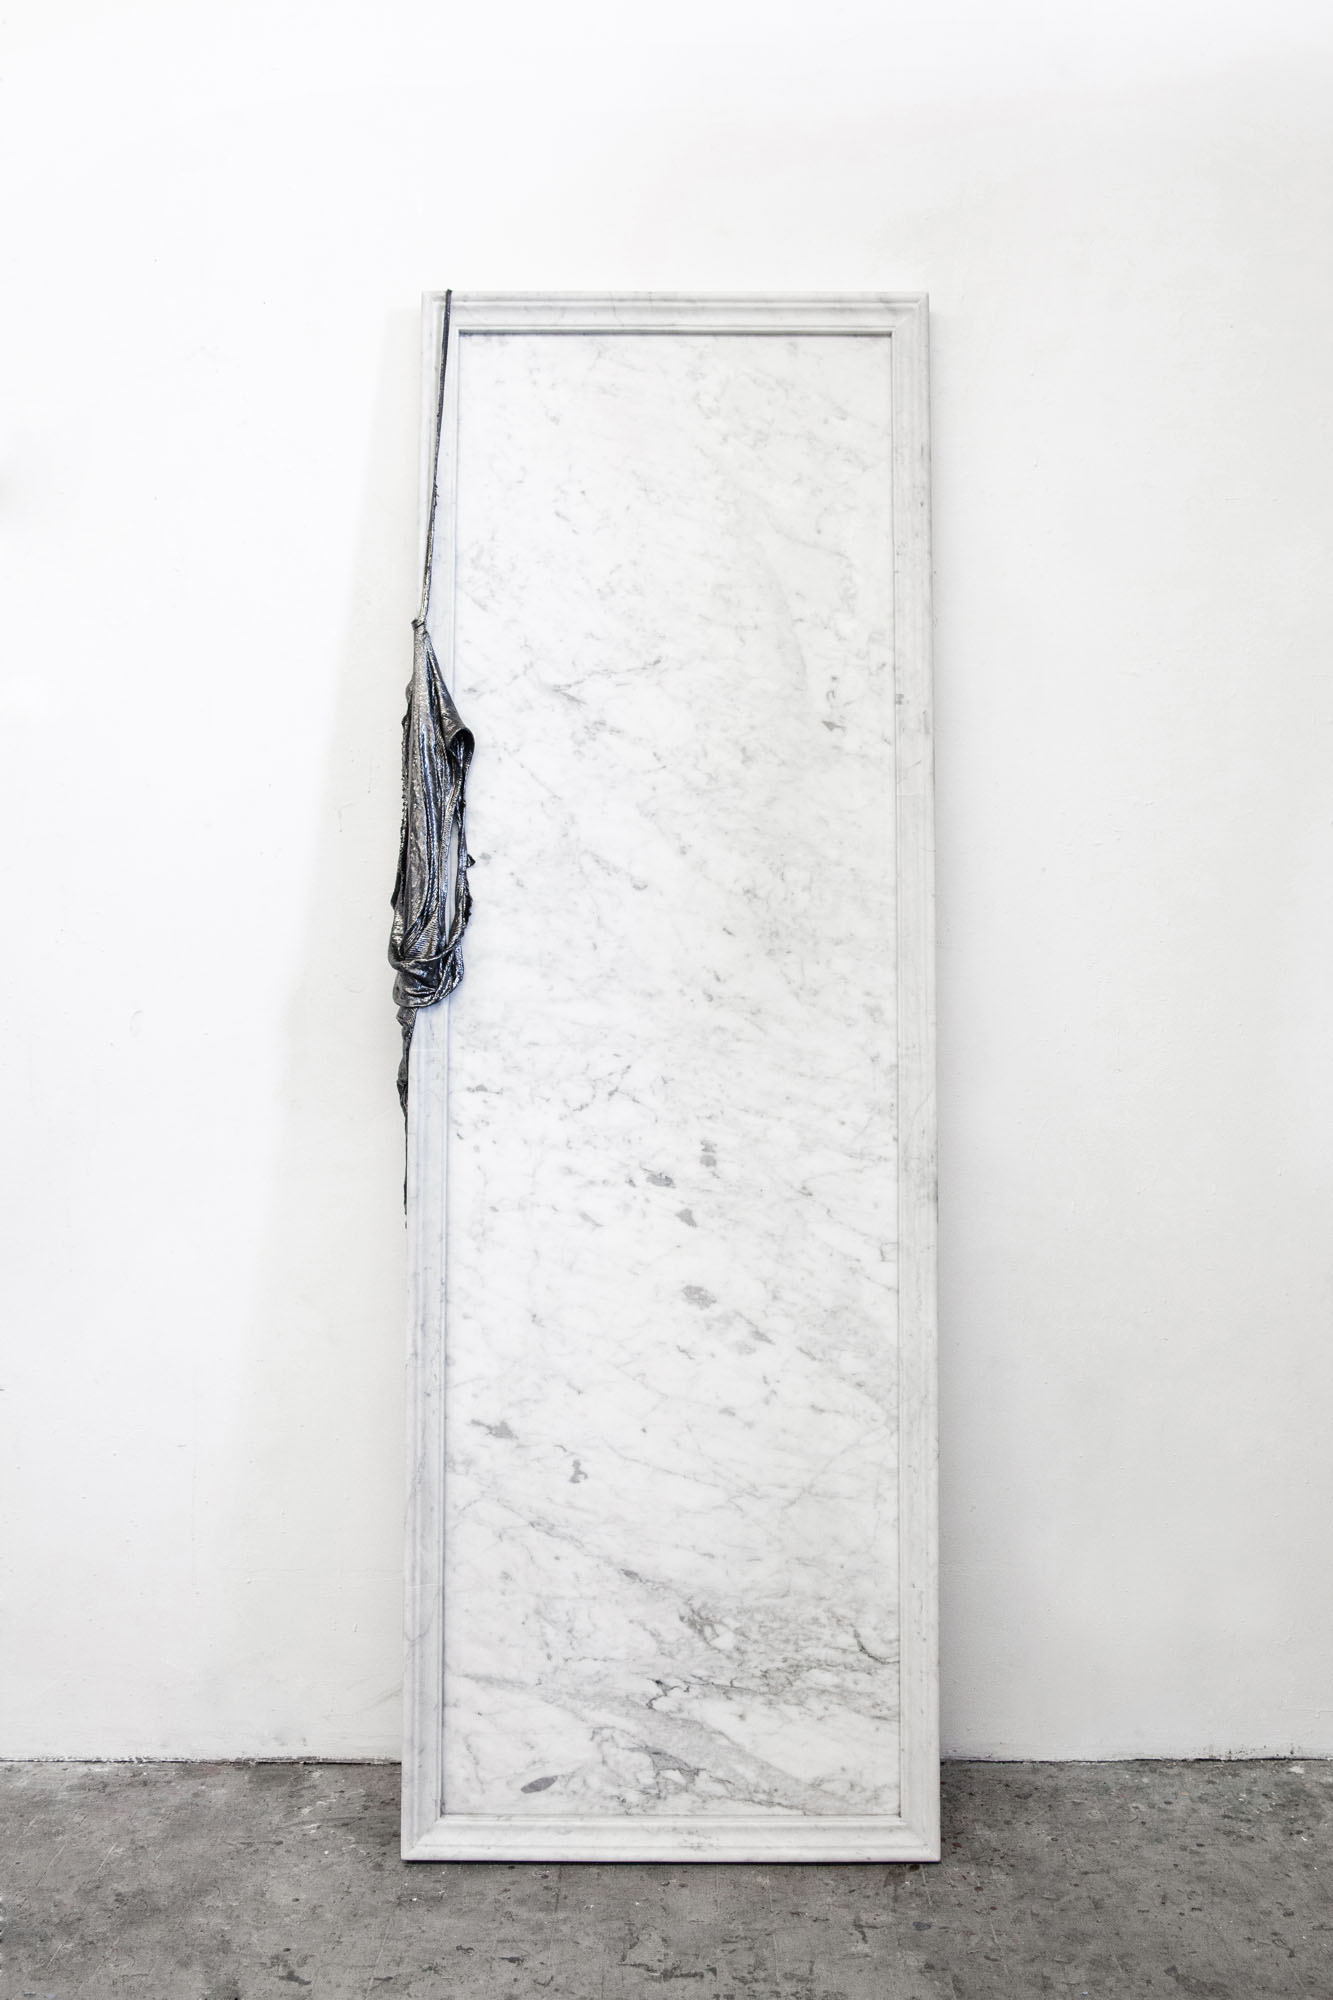 Lauren Seiden  Mirroring The Unseen , 2019 Marble, graphite pencil, cotton, and mixed mediums 72 x 24 x 4 inches (182.88 x 60.96 x 10.16 cm)